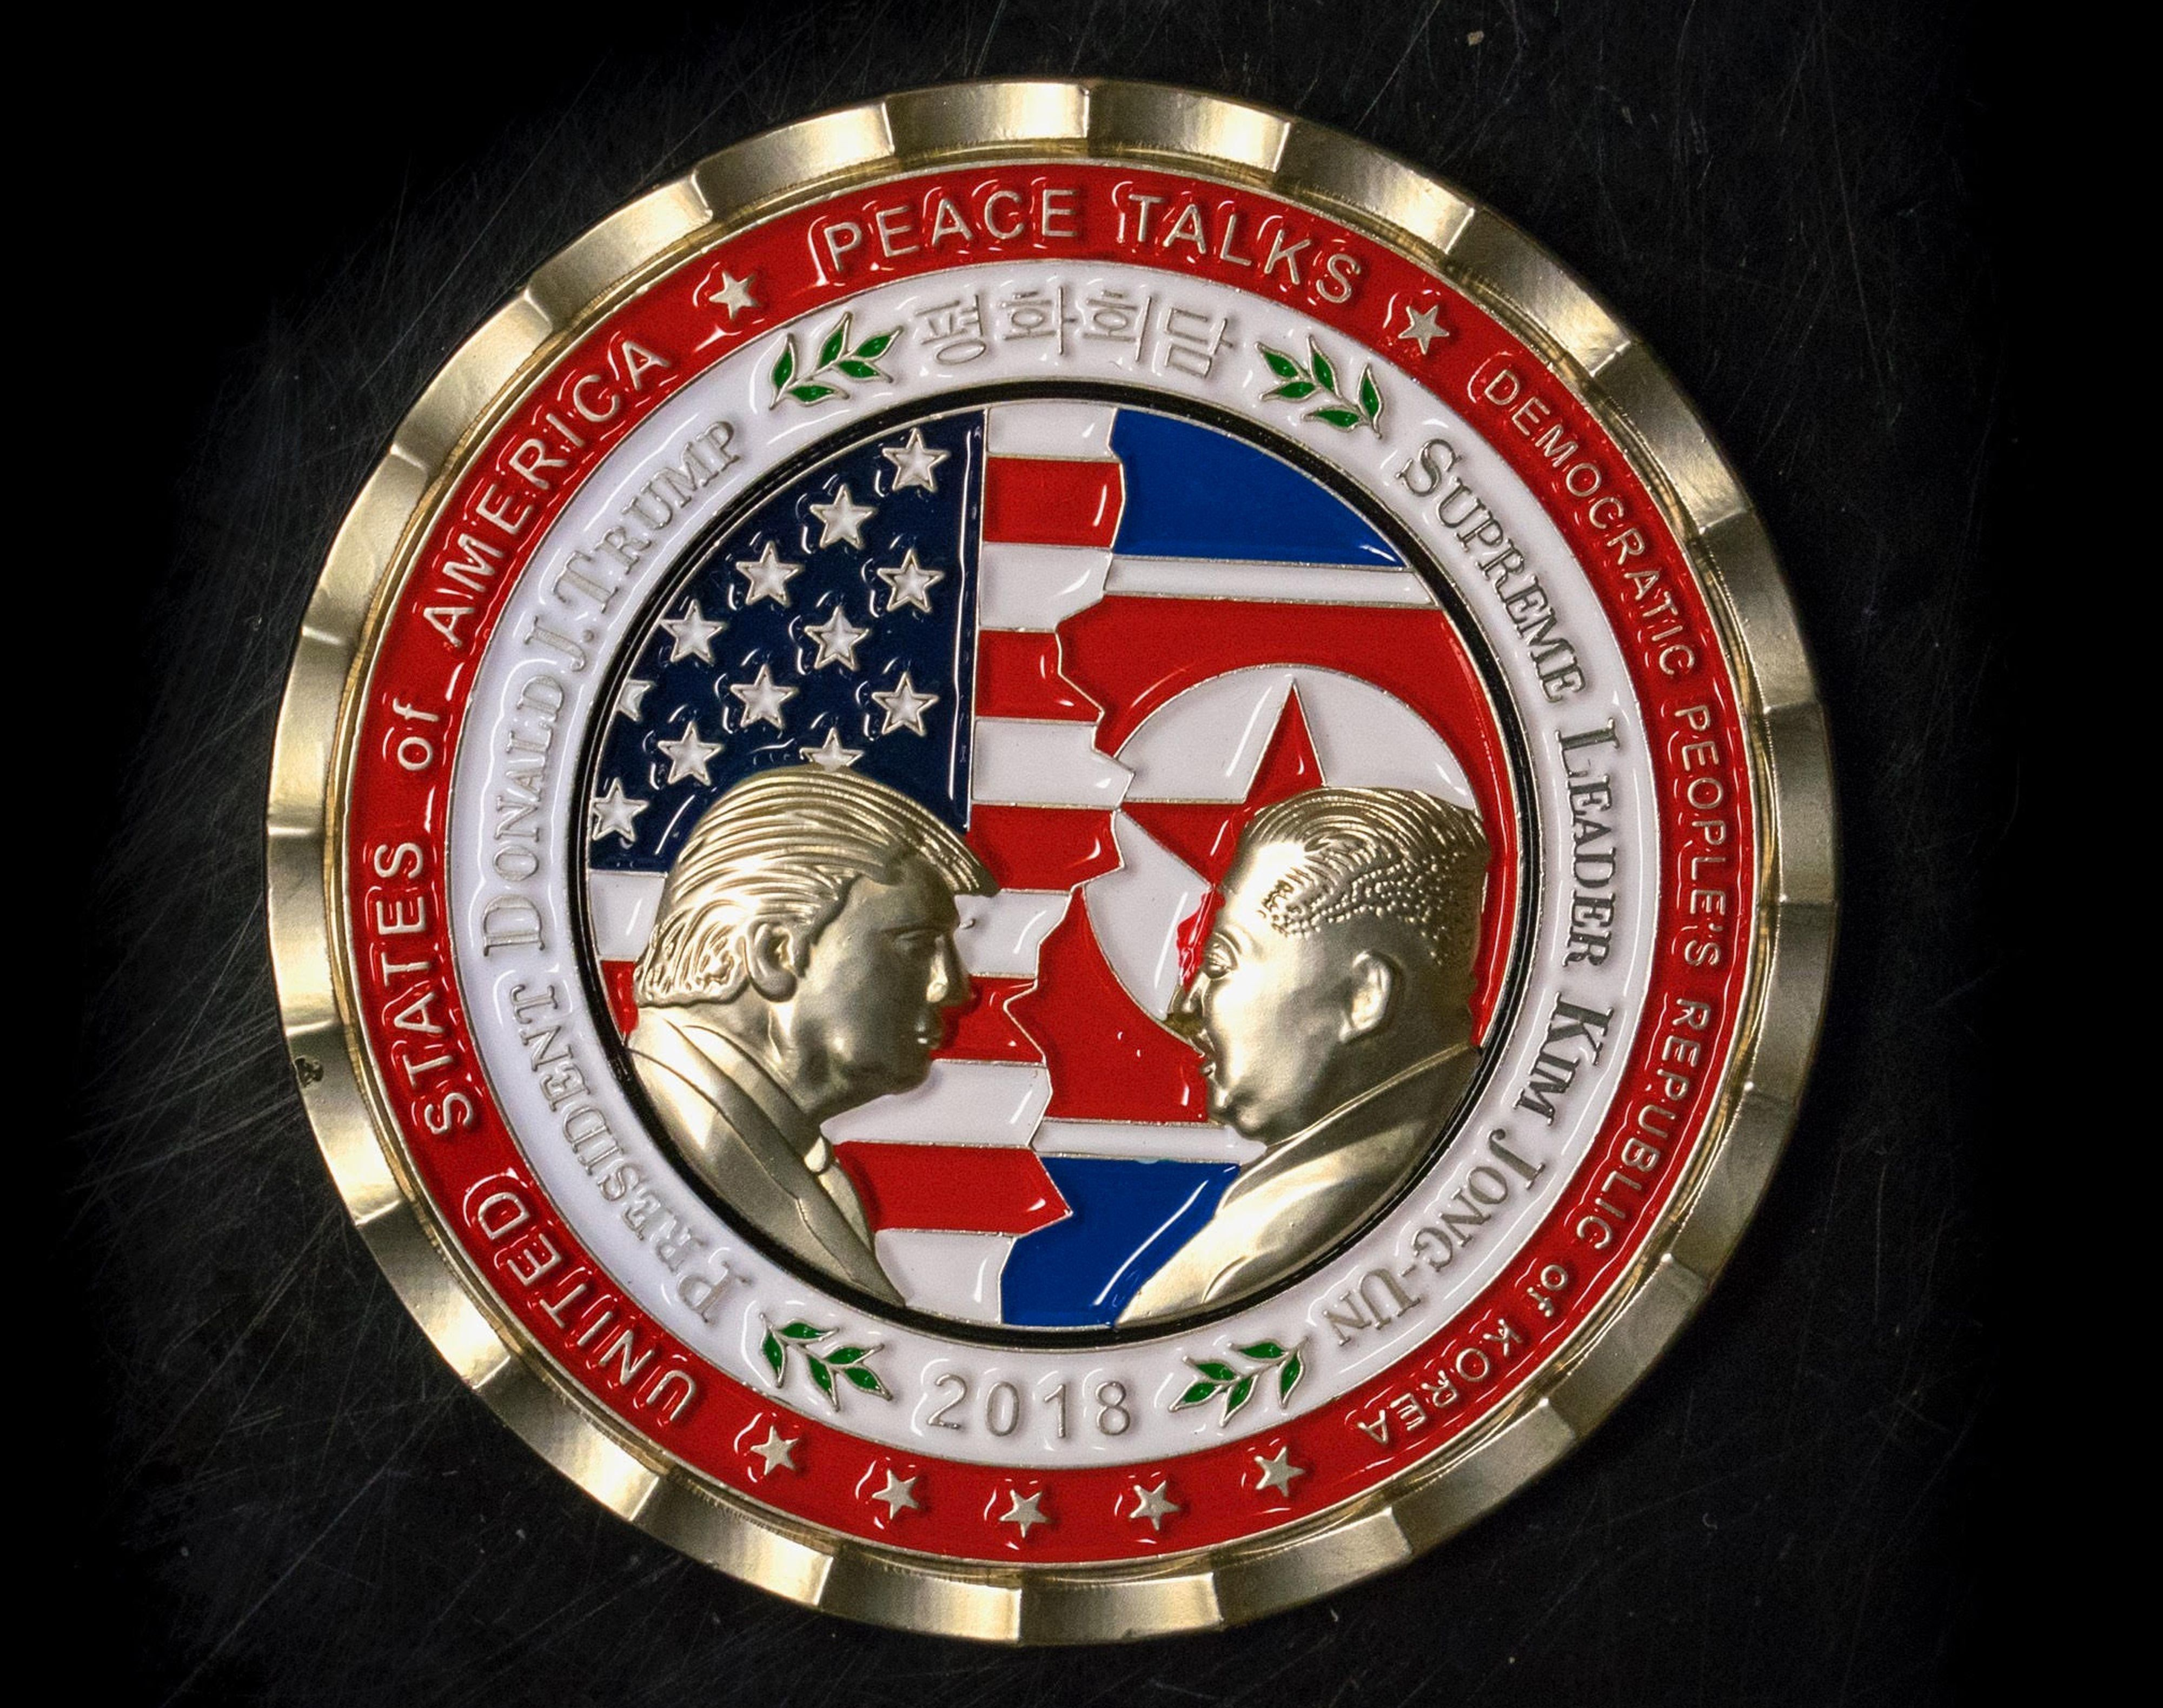 A coin released by the White House to celebrate a planned U.S.-North Korea summit. The talks' status and